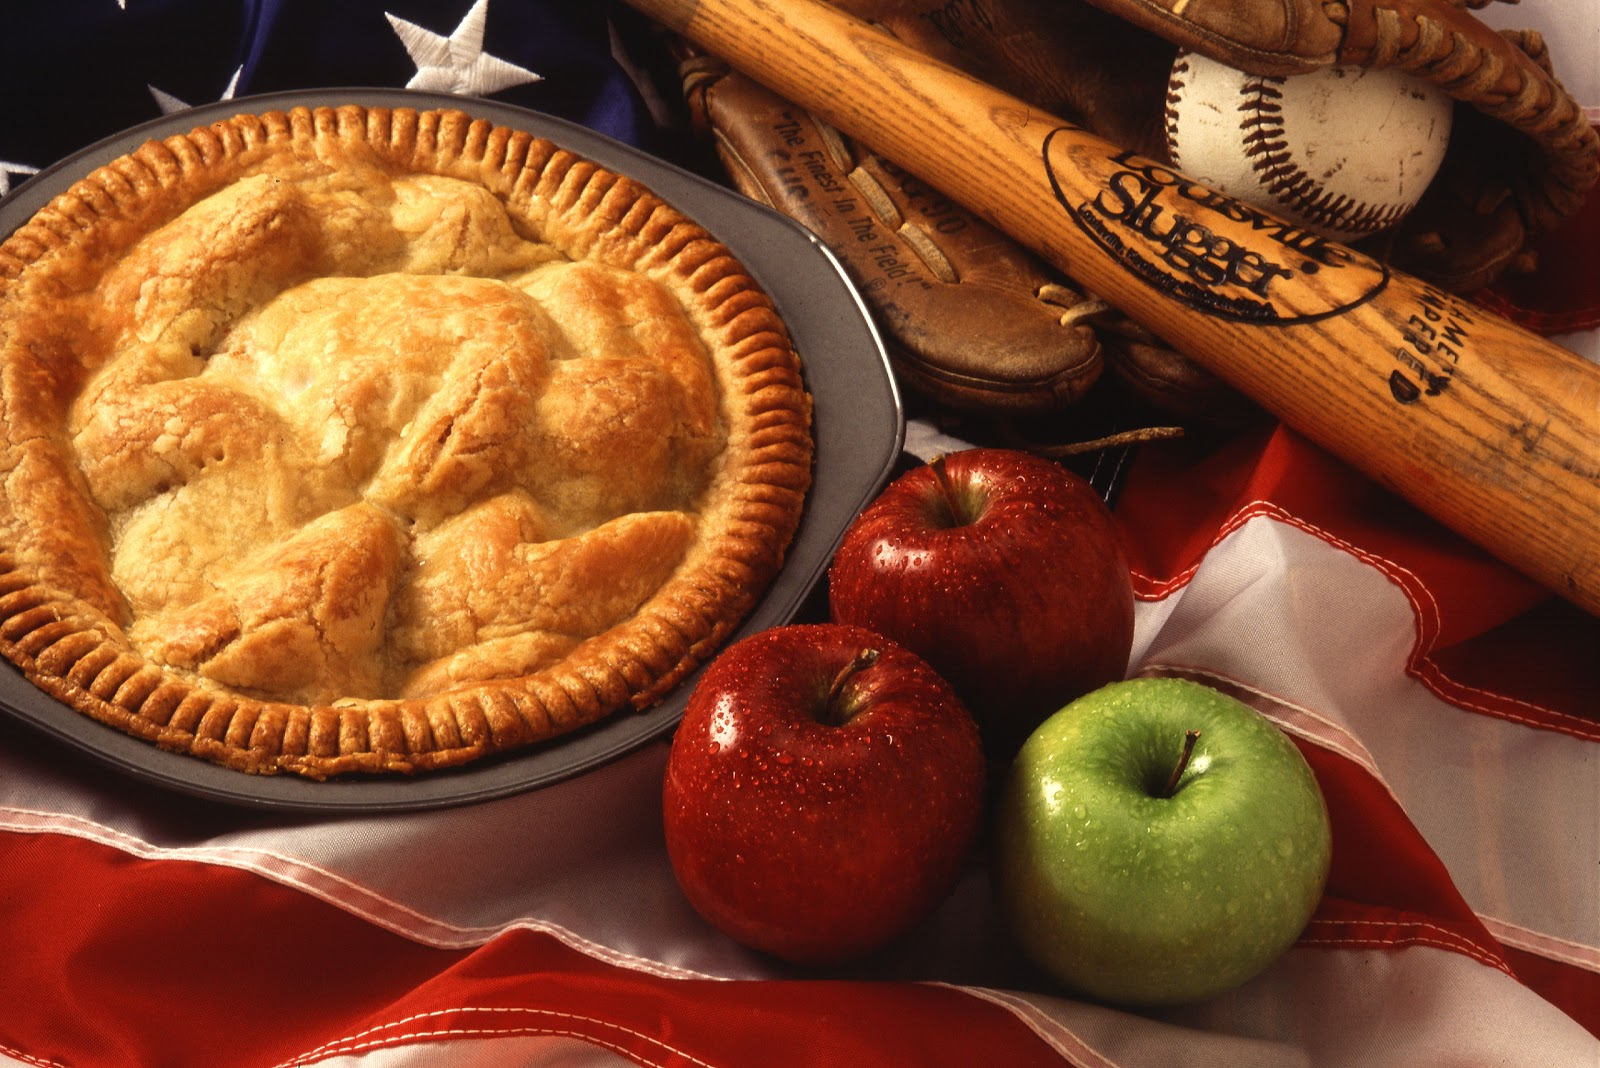 Cooking guide 101 regional cuisine as american as apple pie for American cuisine foods